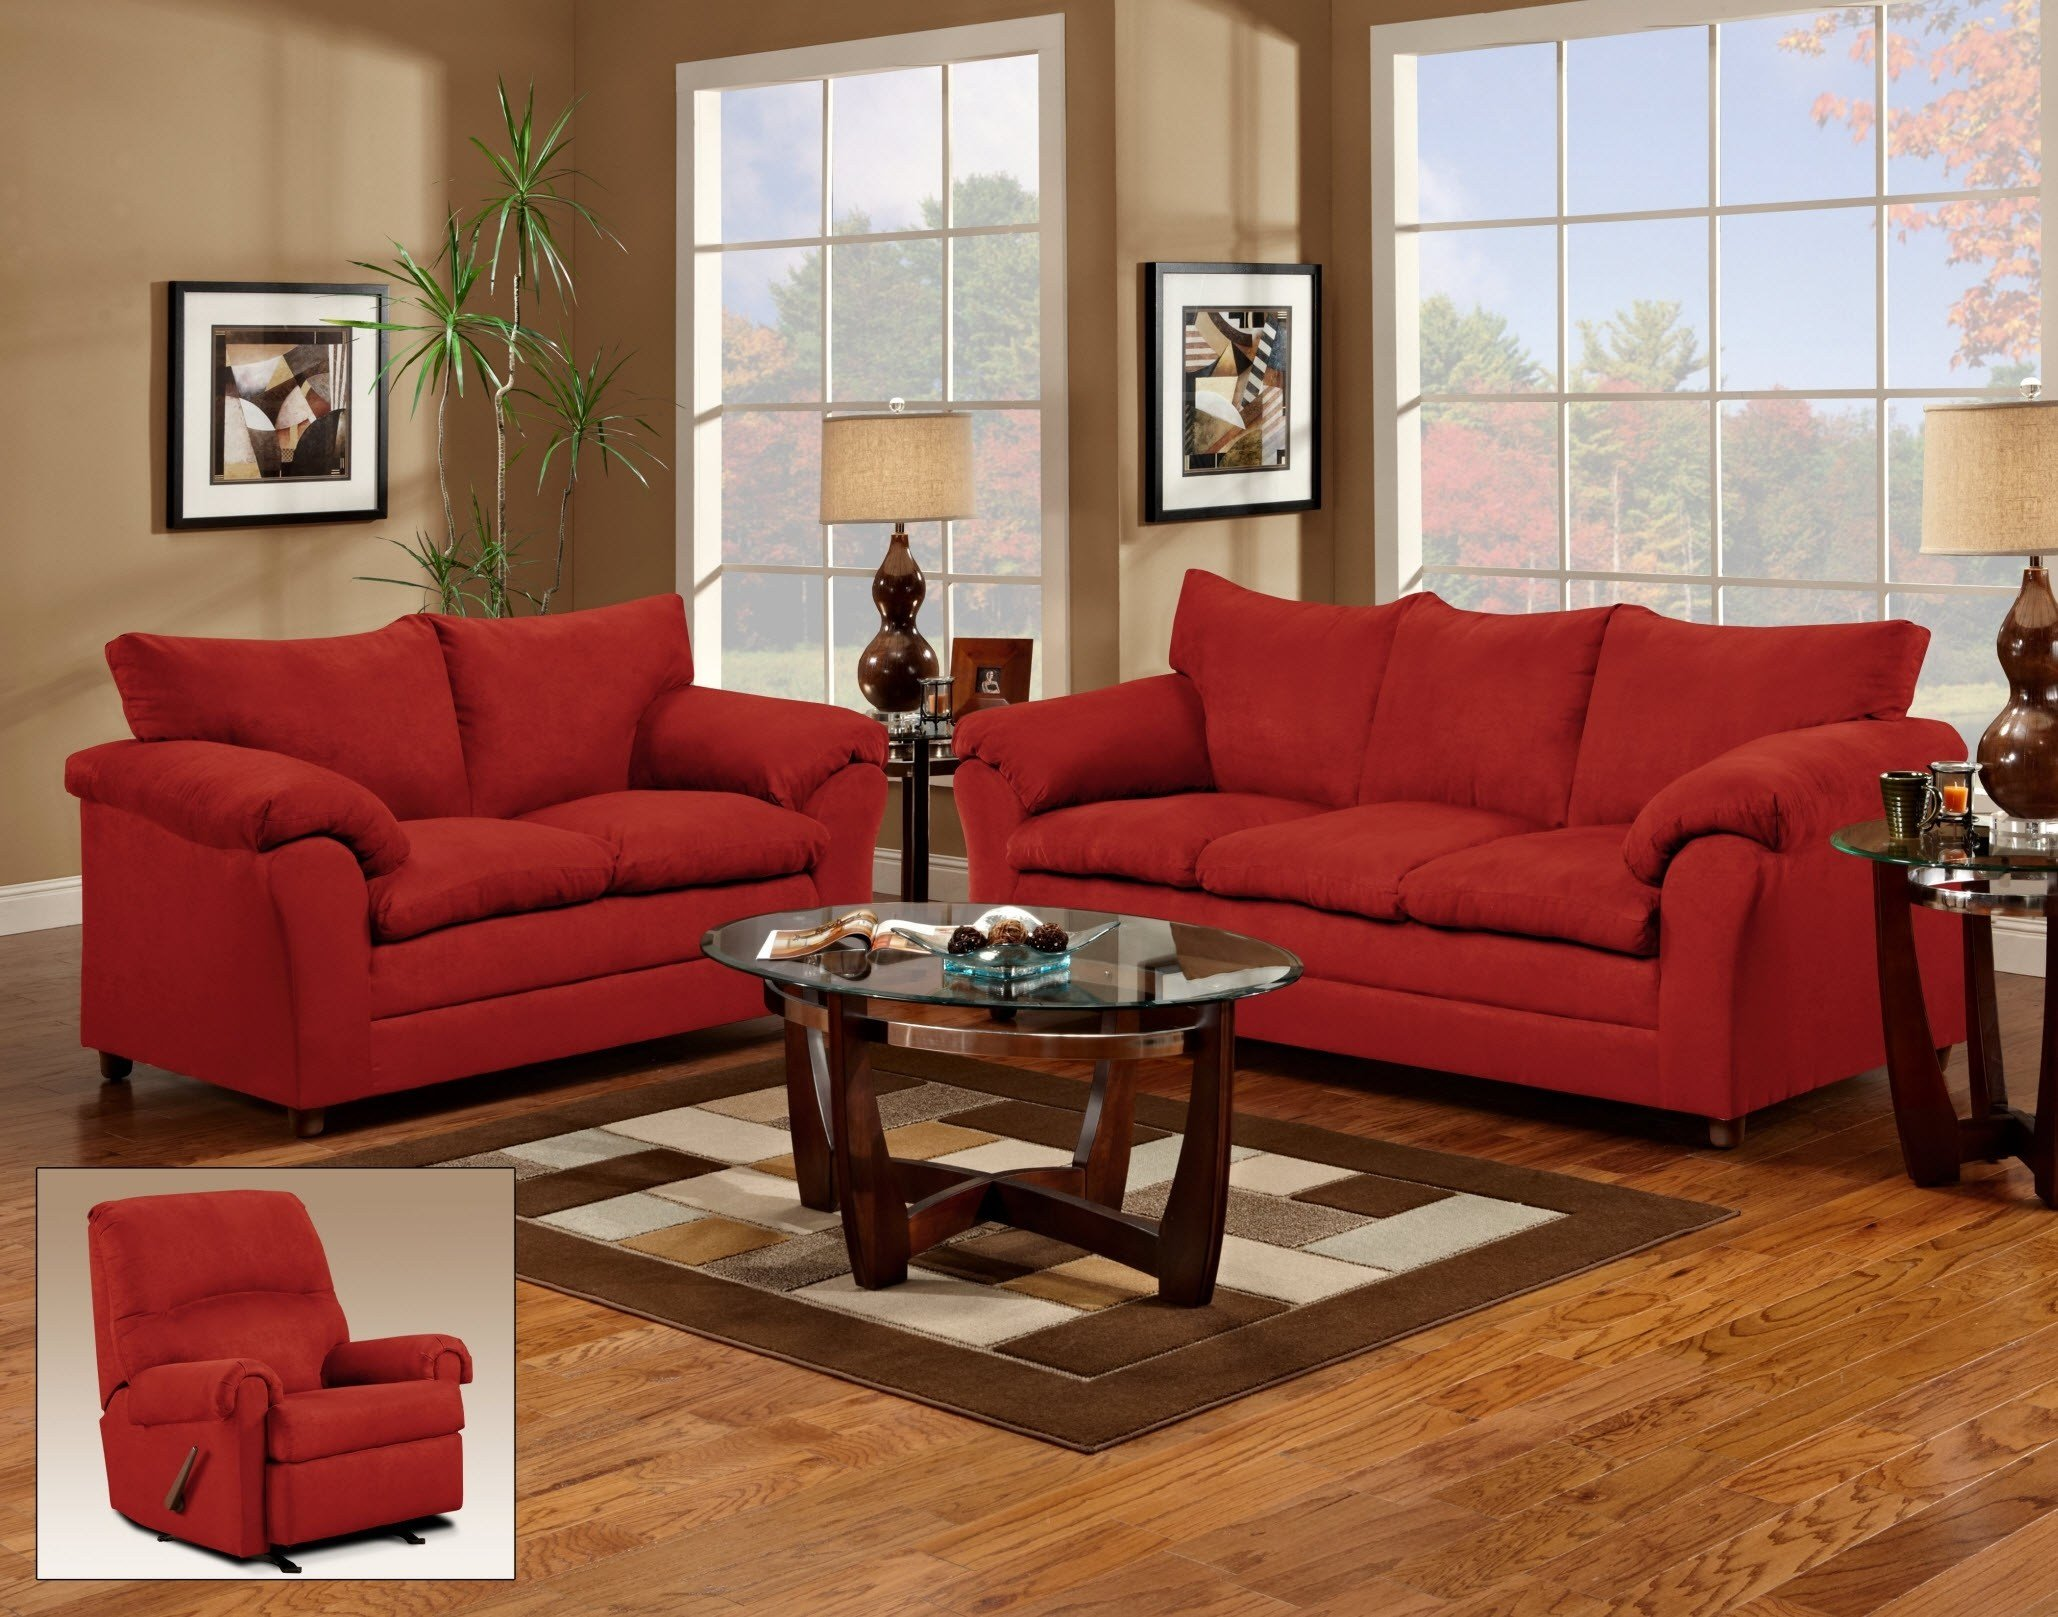 Best 10 Inspirations Wichita Ks Sectional Sofas Sofa Ideas With Pictures